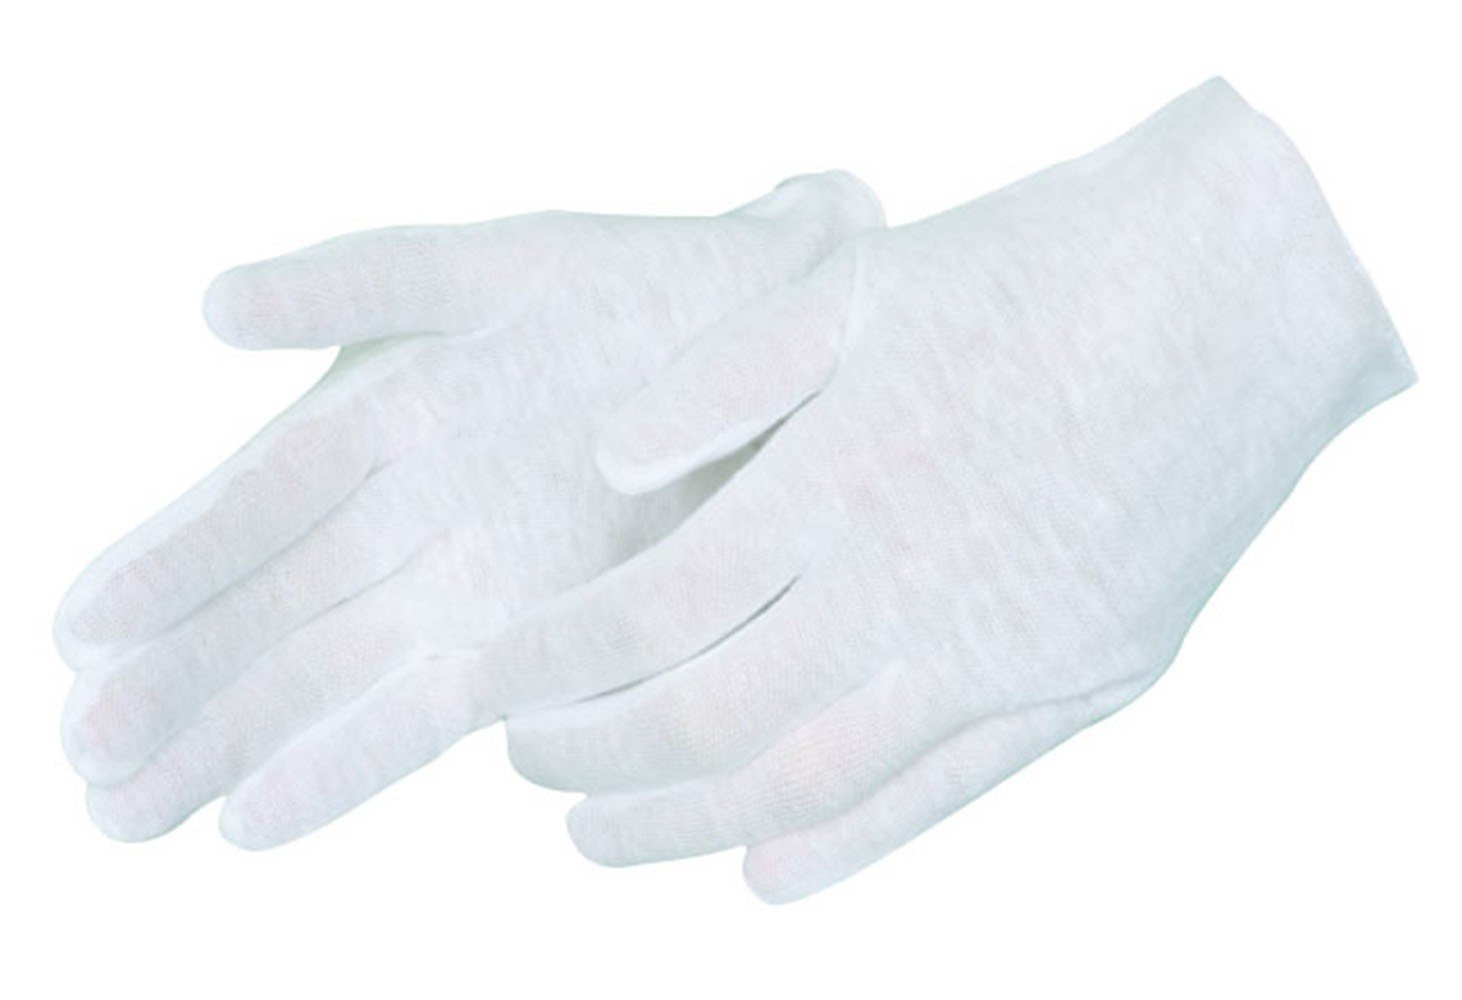 White Light weight Cotton Lisle Inspection Gloves Mens Large 3 Dz Pairs